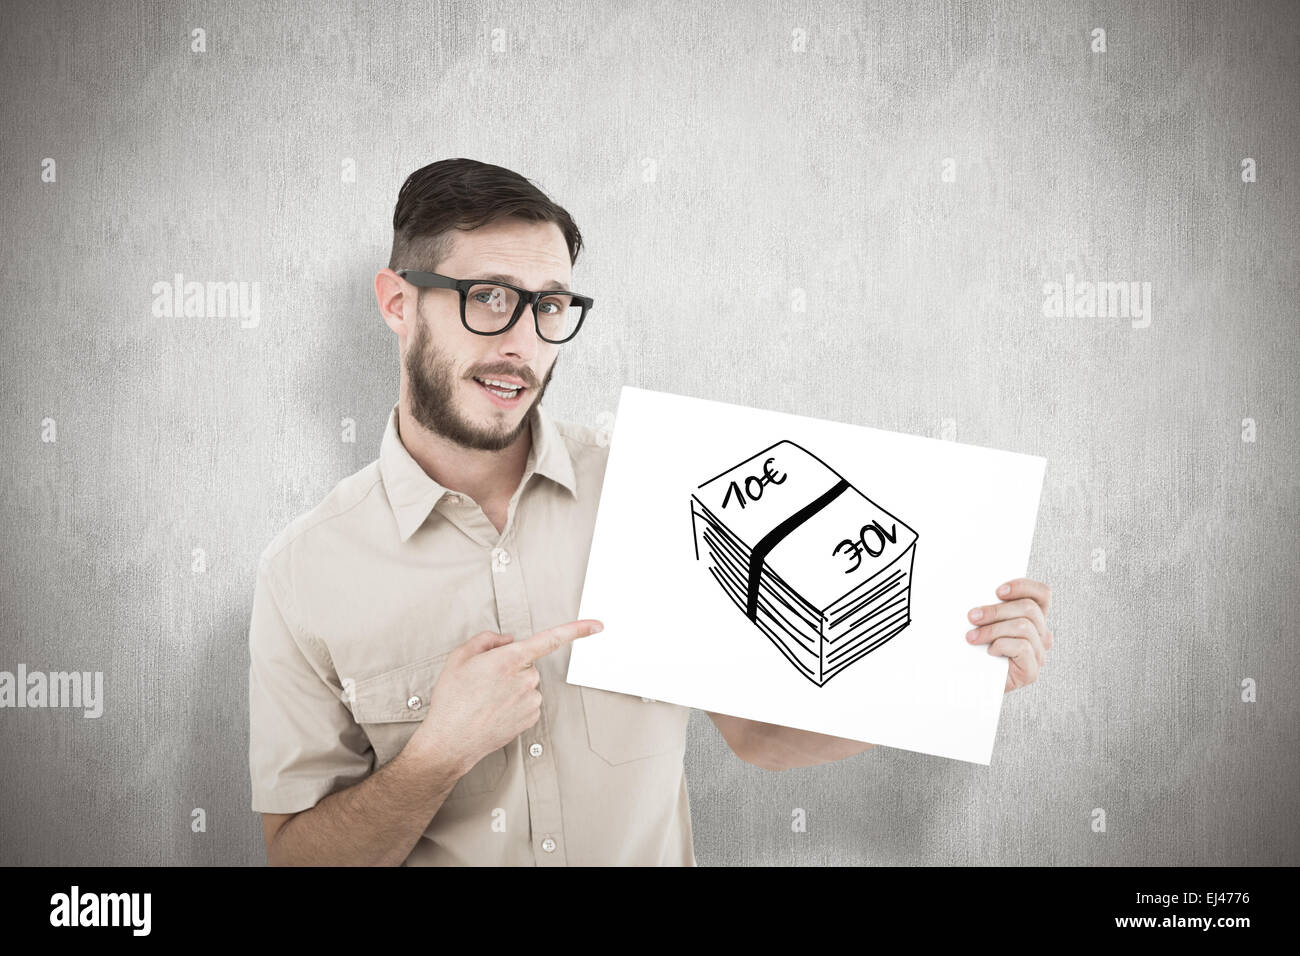 Composite image of geeky hipster pointing at poster - Stock Image